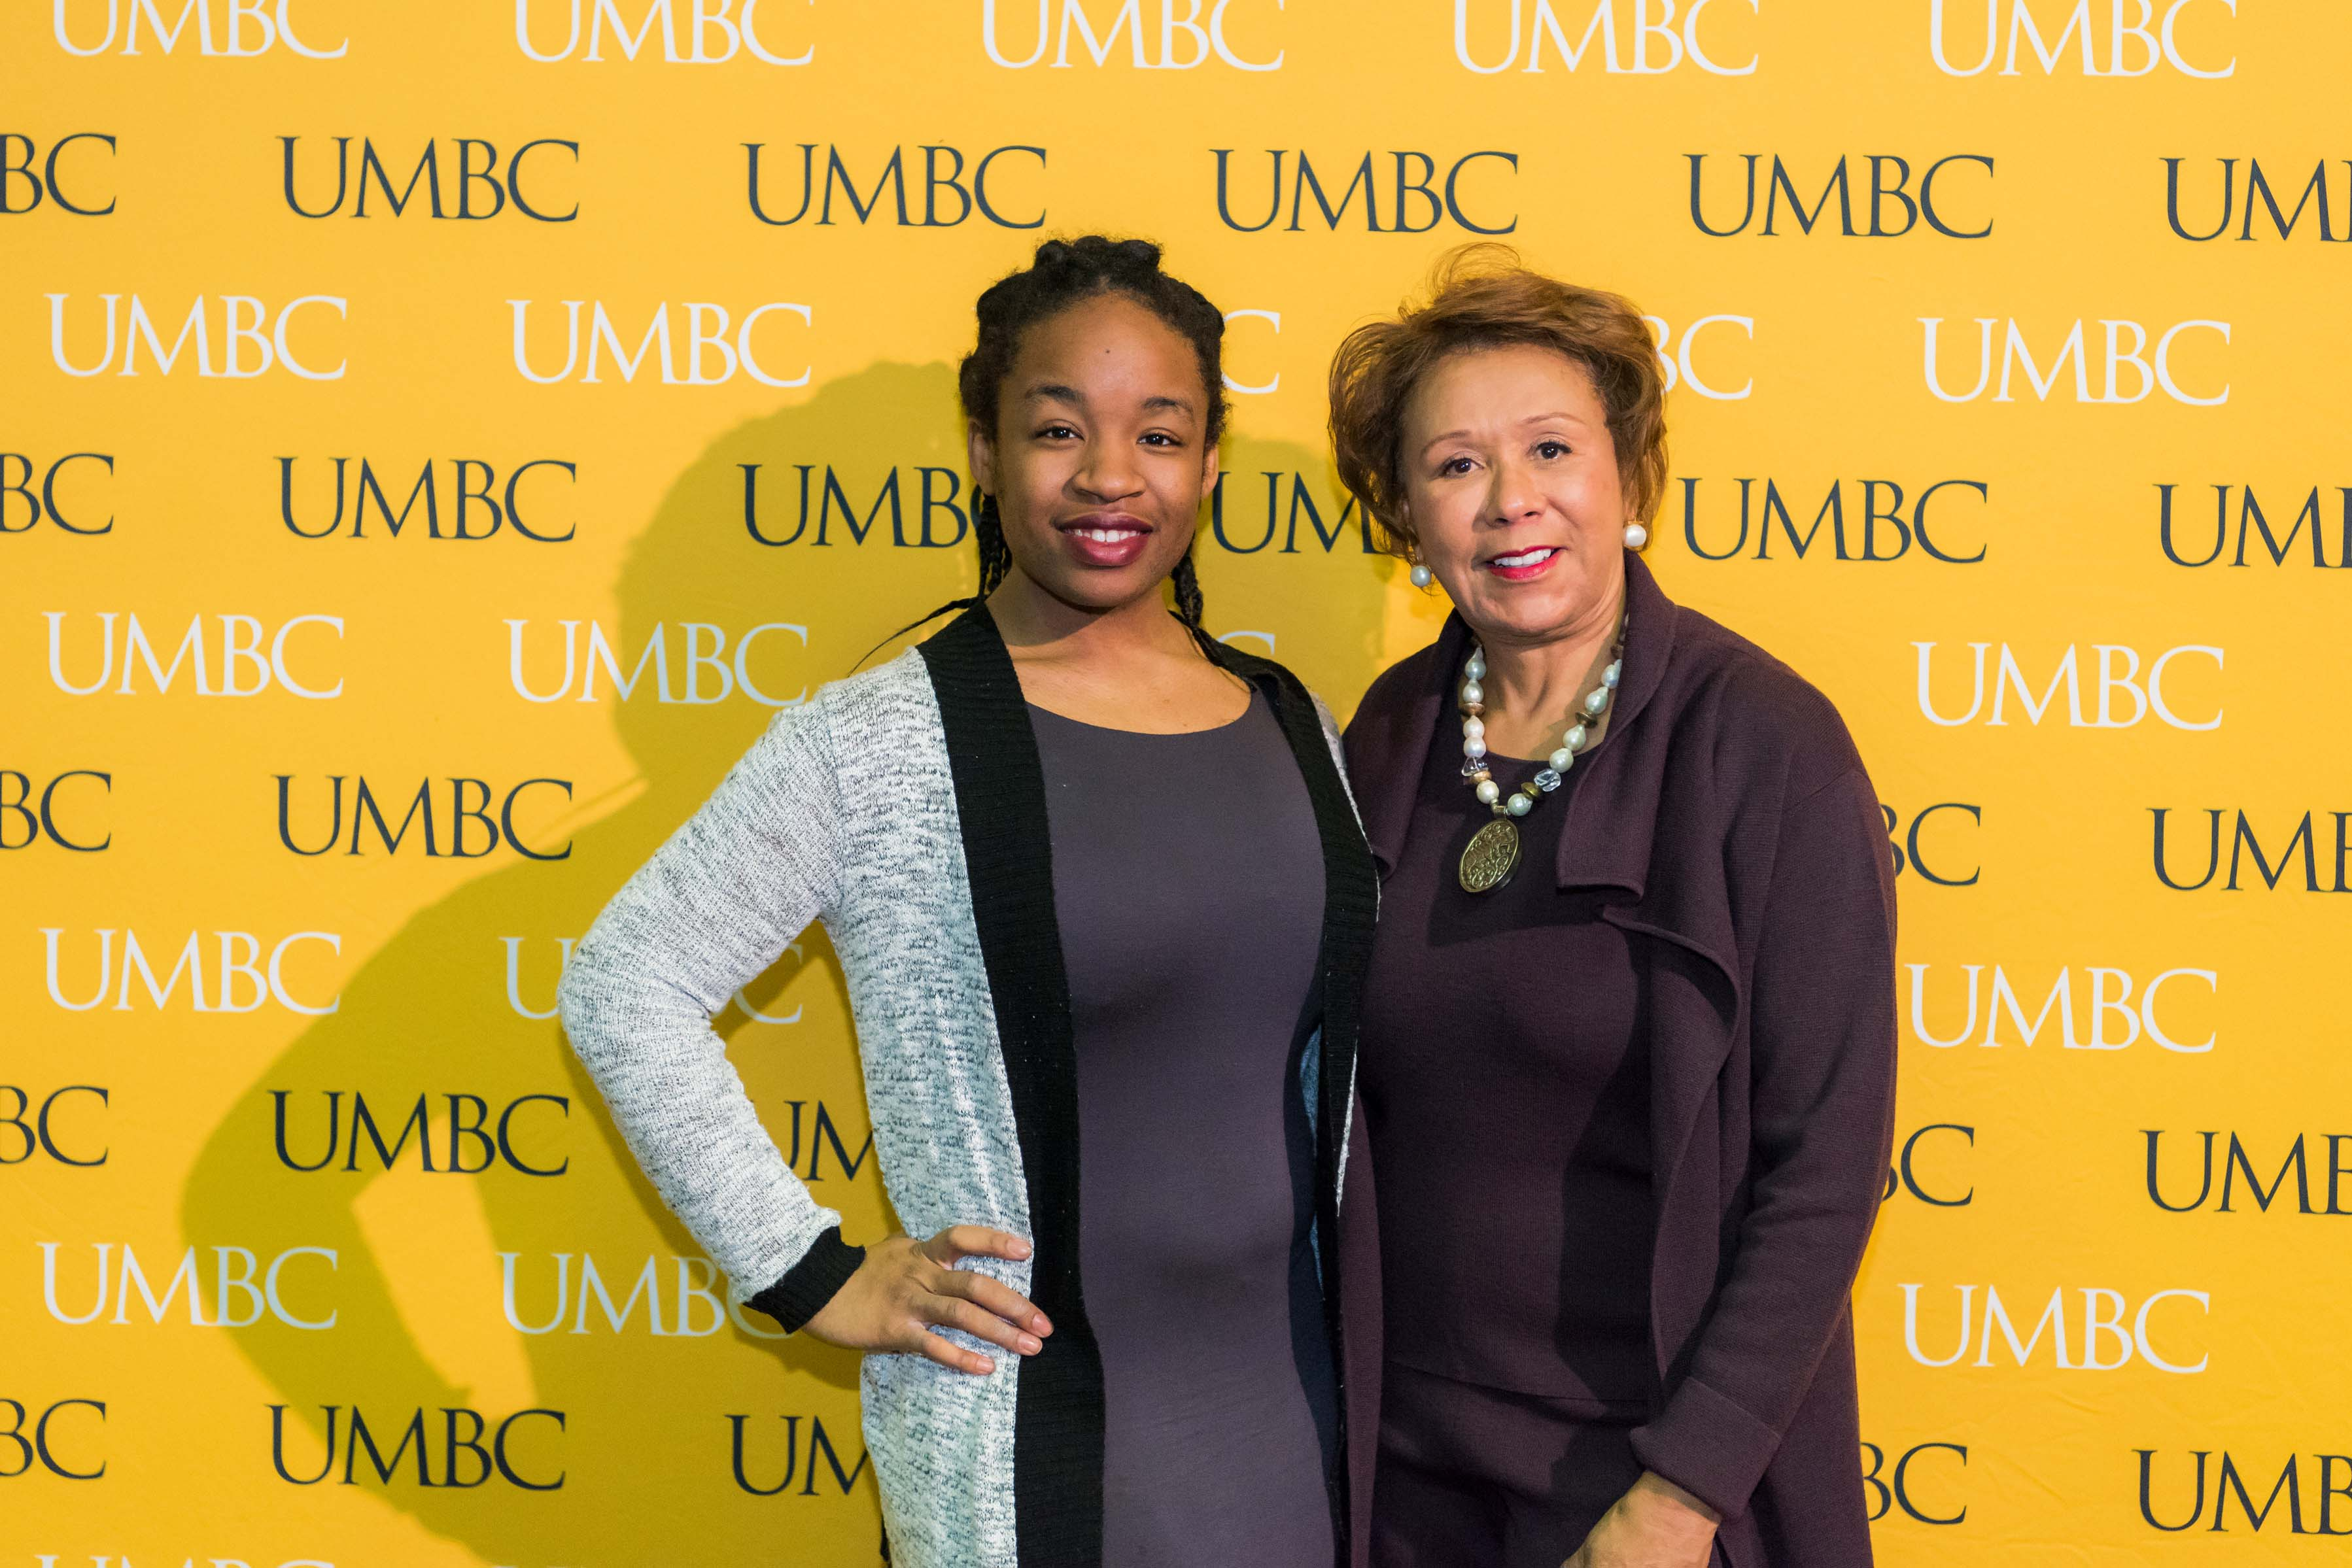 Women and Jacqueline Hrabowski pose in front of the UMBC wall at the scholarship luncheon